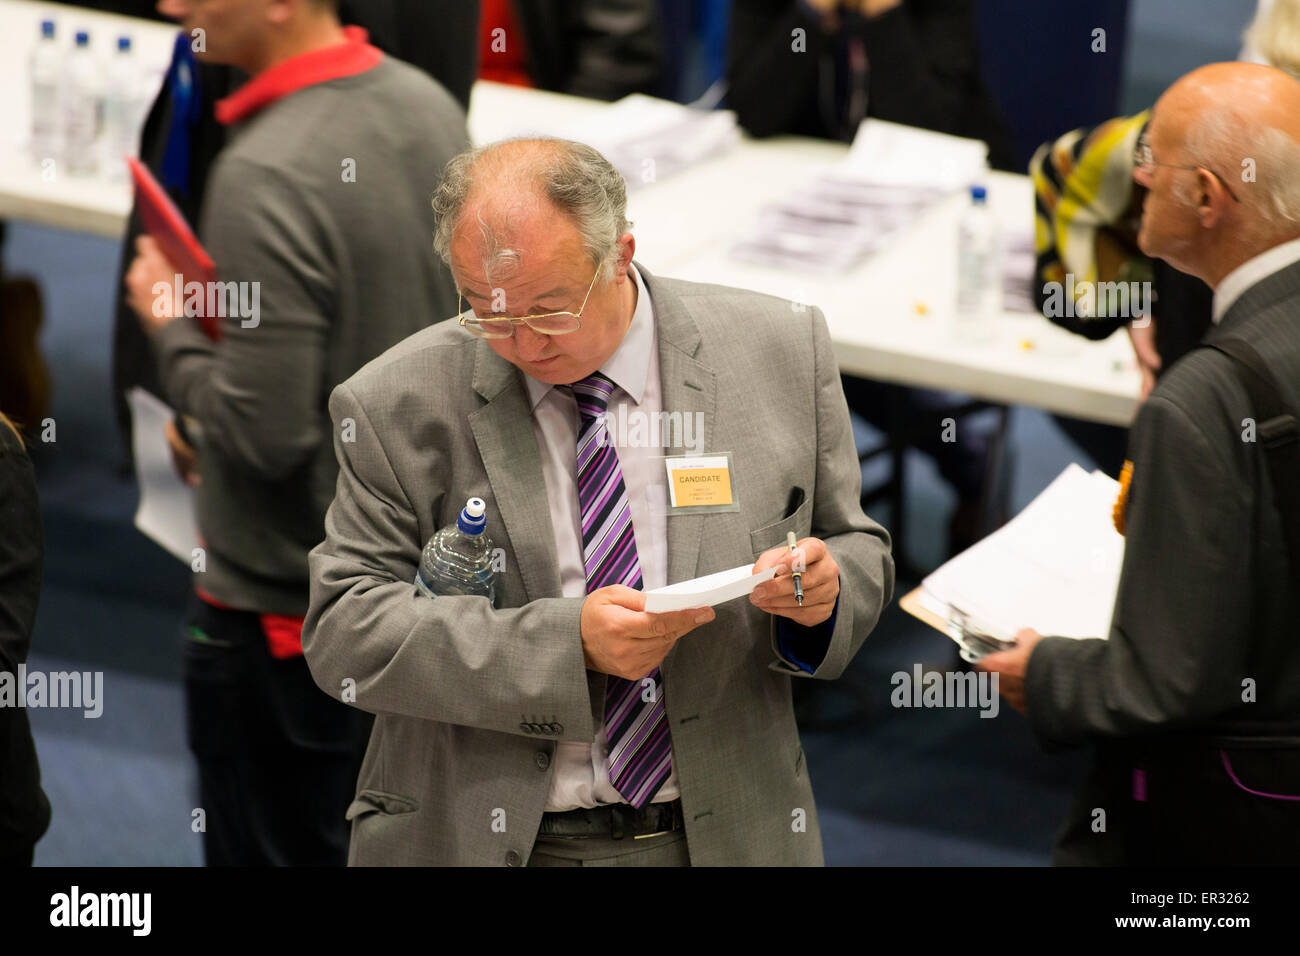 Liberal Democrat John Hemming pictured centre, at the General Election count at the ICC Birmingham where he lost - Stock Image